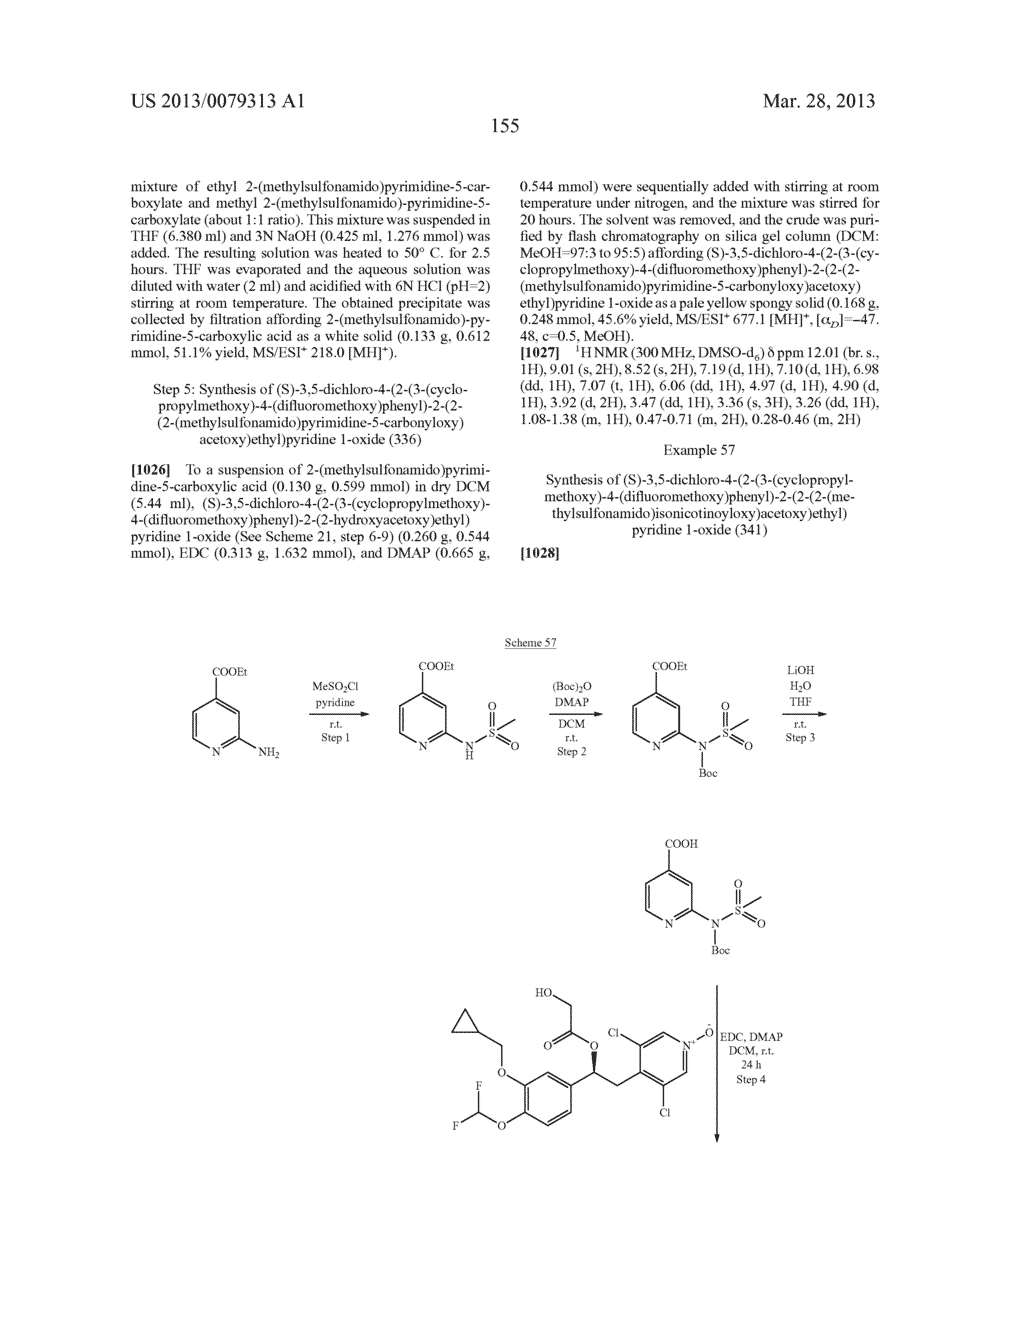 DERIVATIVES OF 1-PHENYL-2-PYRIDINYL ALKYL ALCOHOLS AS PHOSPHODIESTERASE     INHIBITORS - diagram, schematic, and image 156